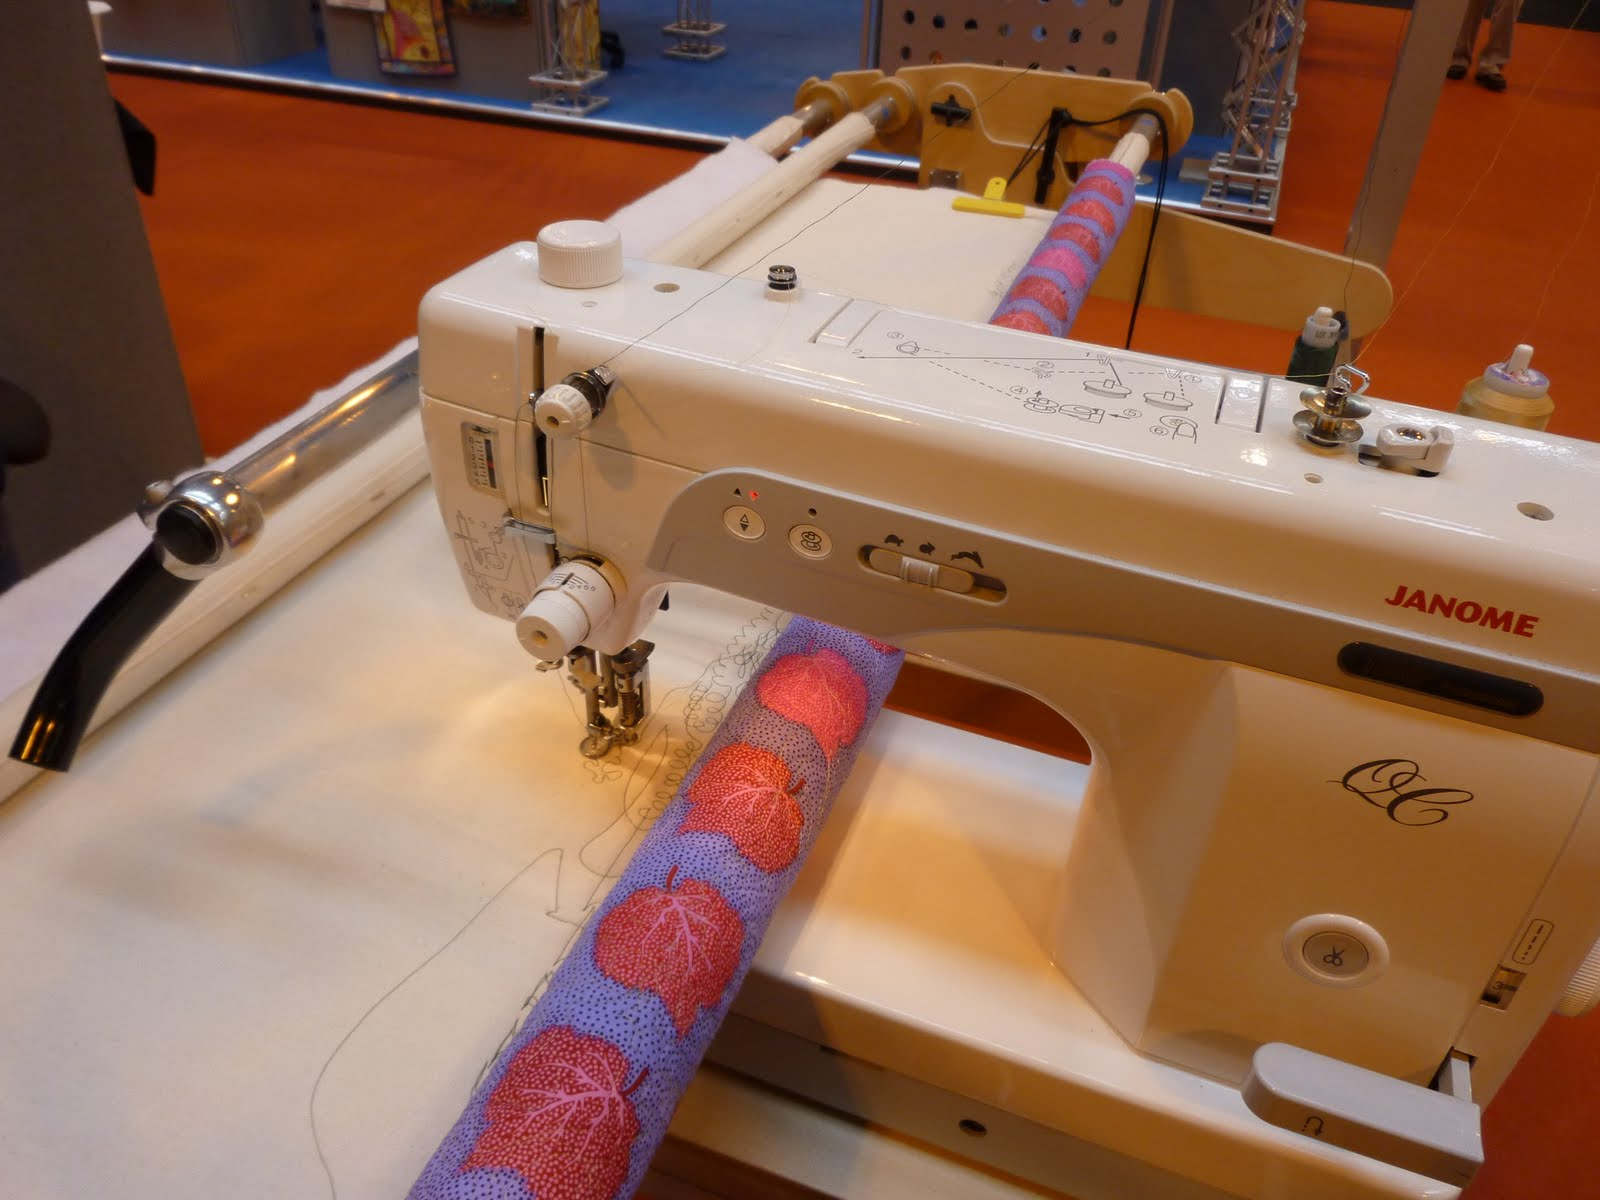 Sew Janome: Freestyle Quilting Frame using the Janome 1600p...